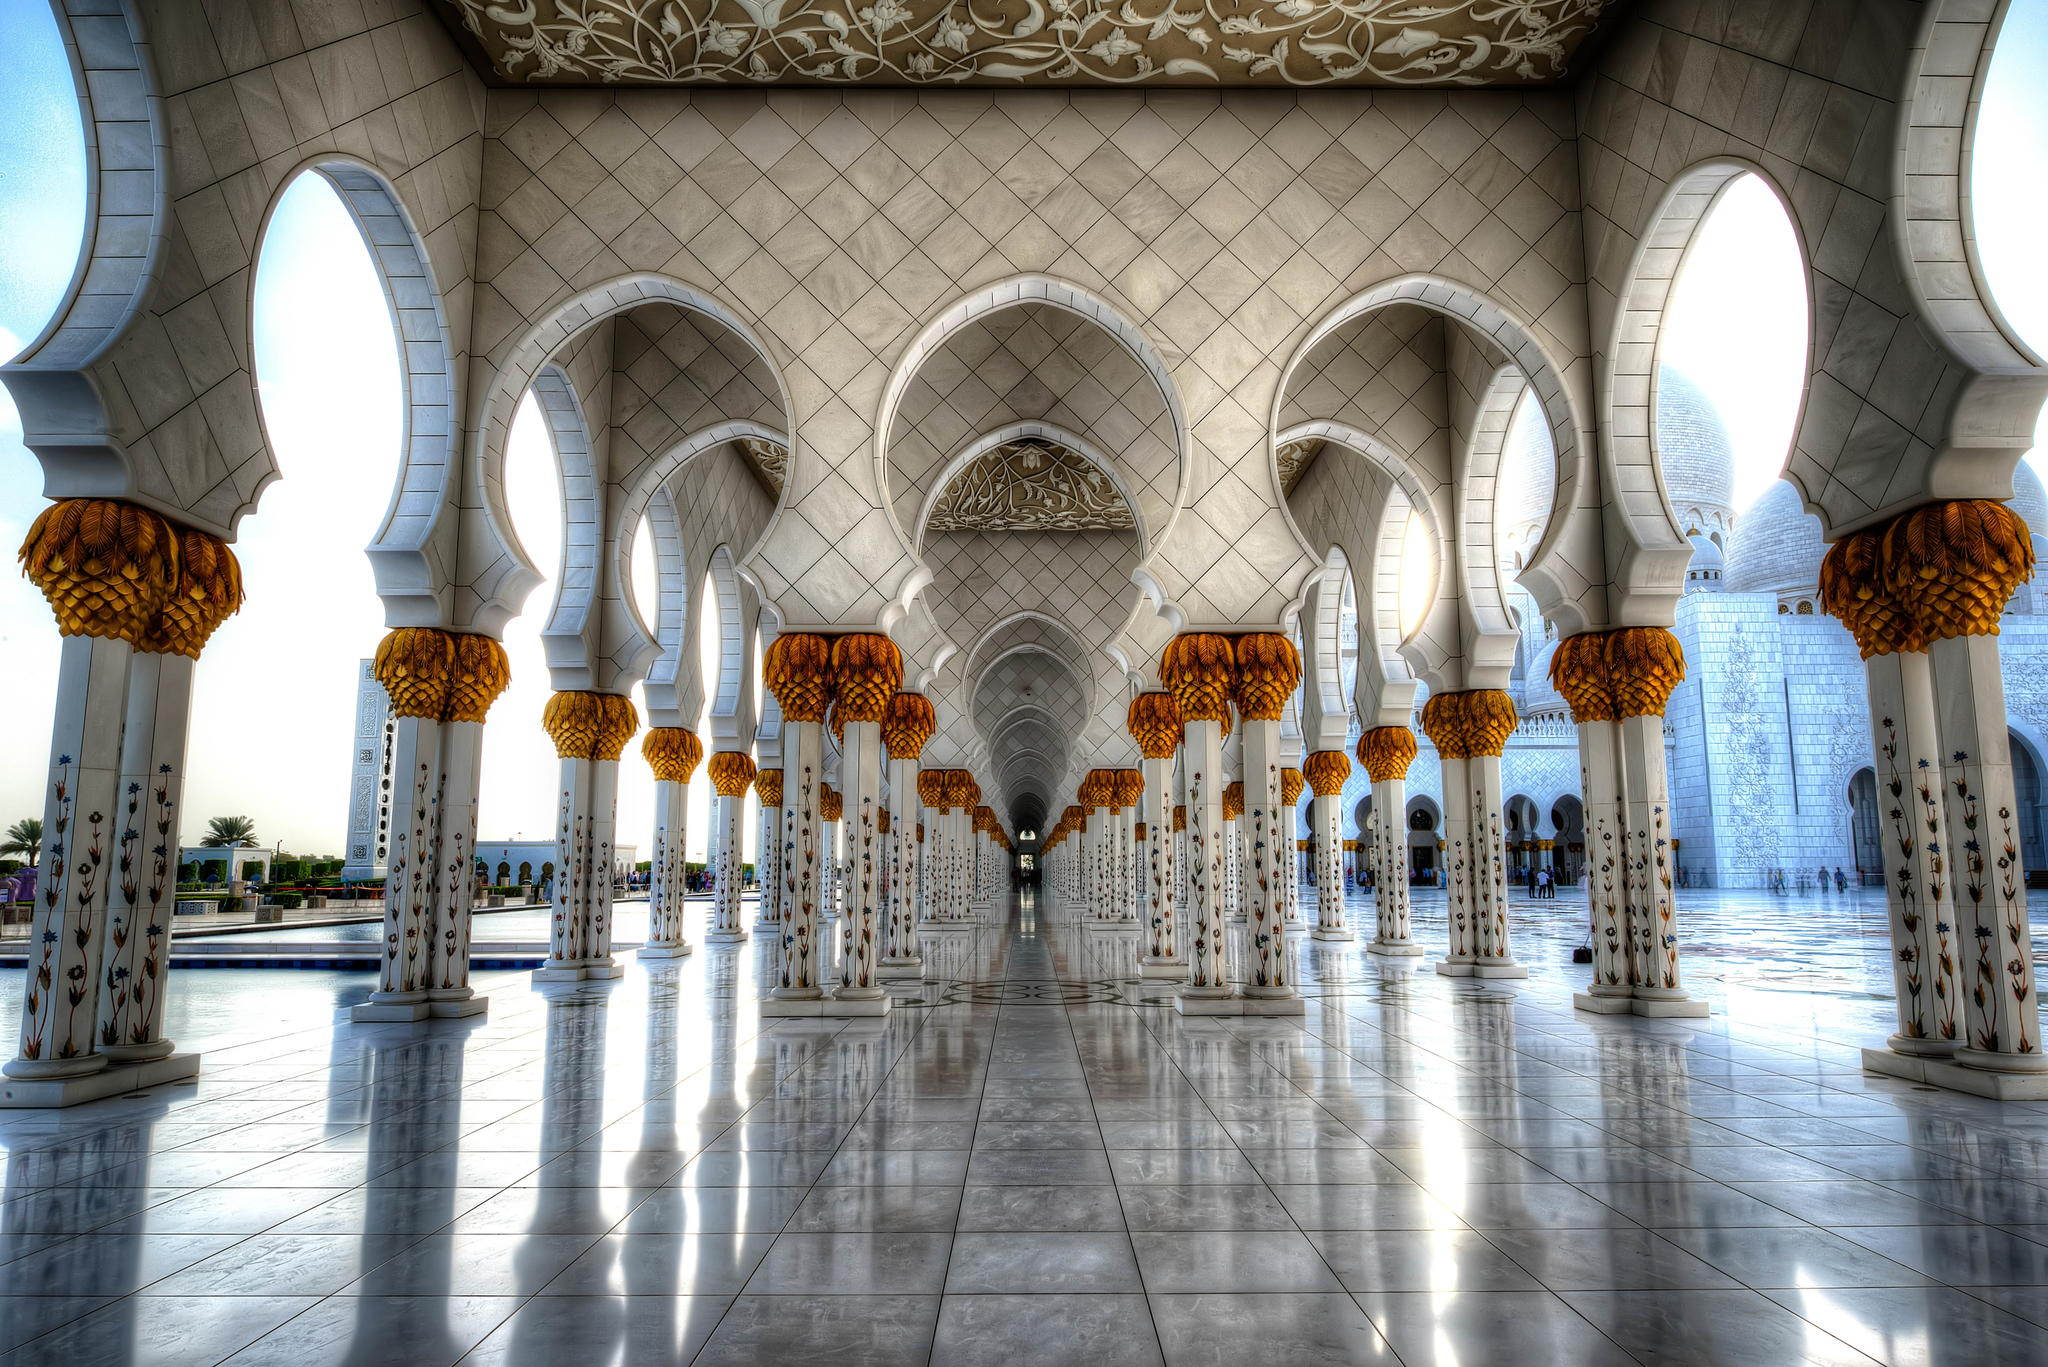 Photograph Sheikh Zayed Grand Mosque by Javier Mendoza on 500px